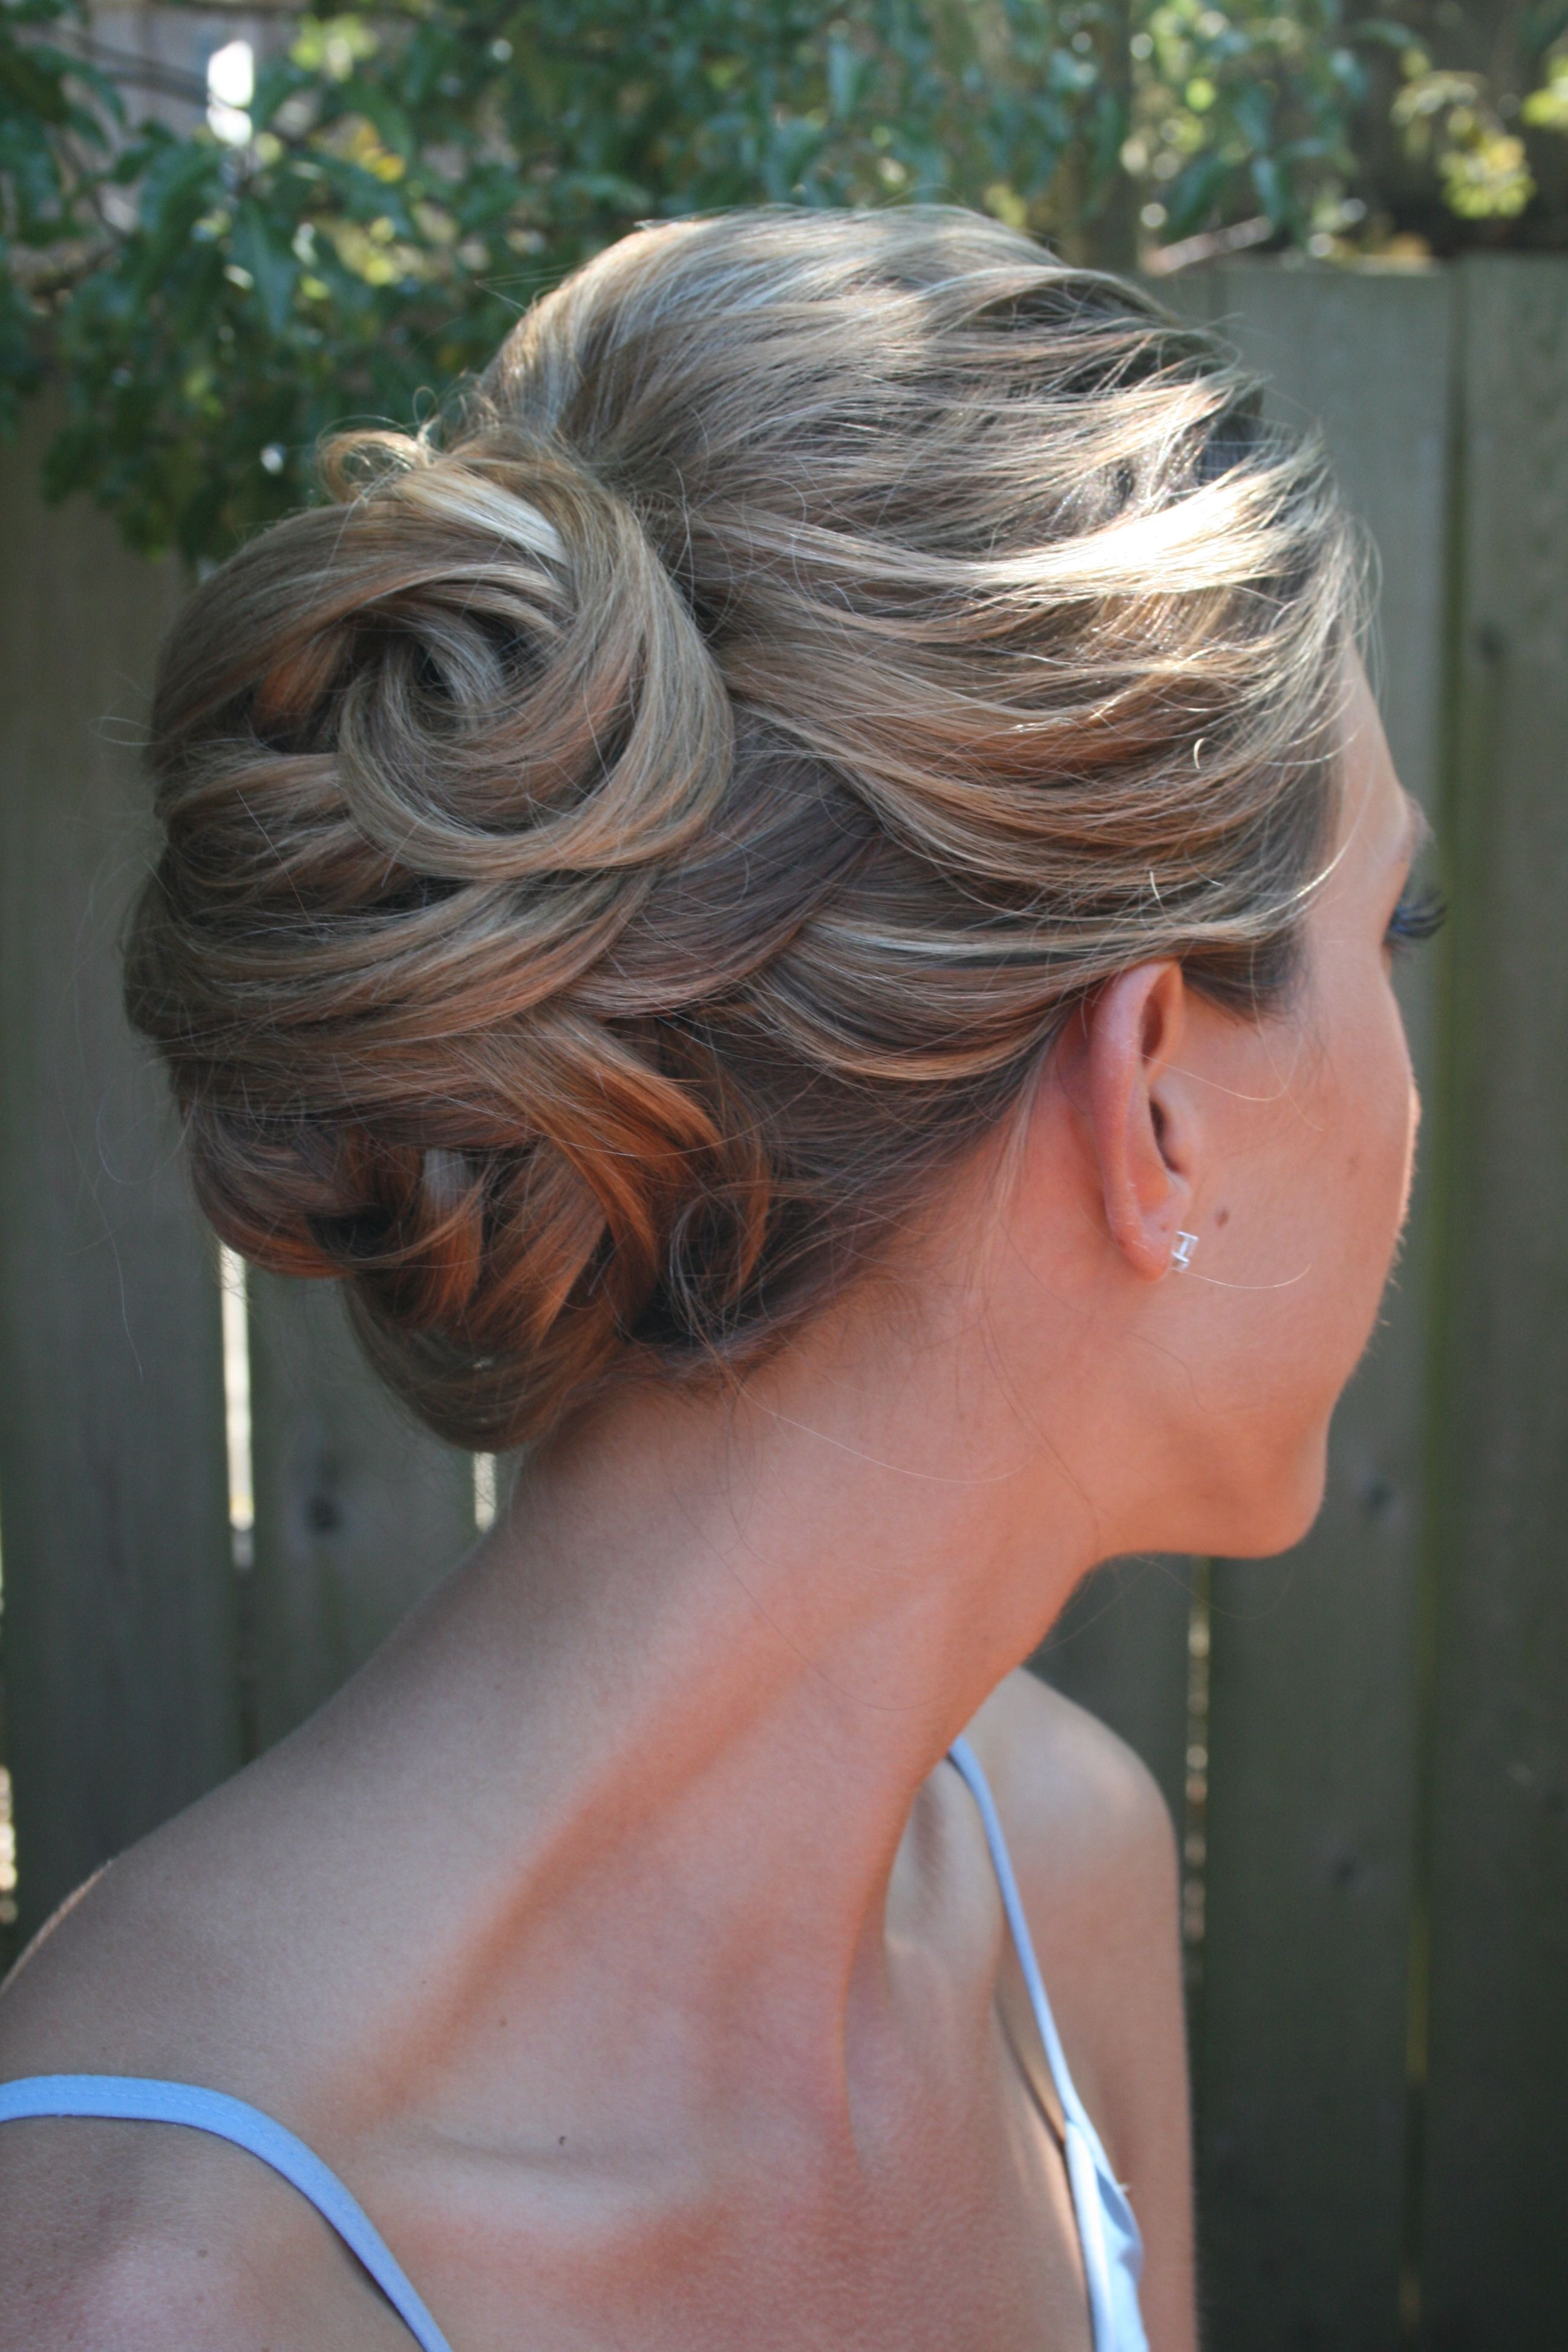 Bridal Hairstyle By Lia Negrete For More Great Ideas And